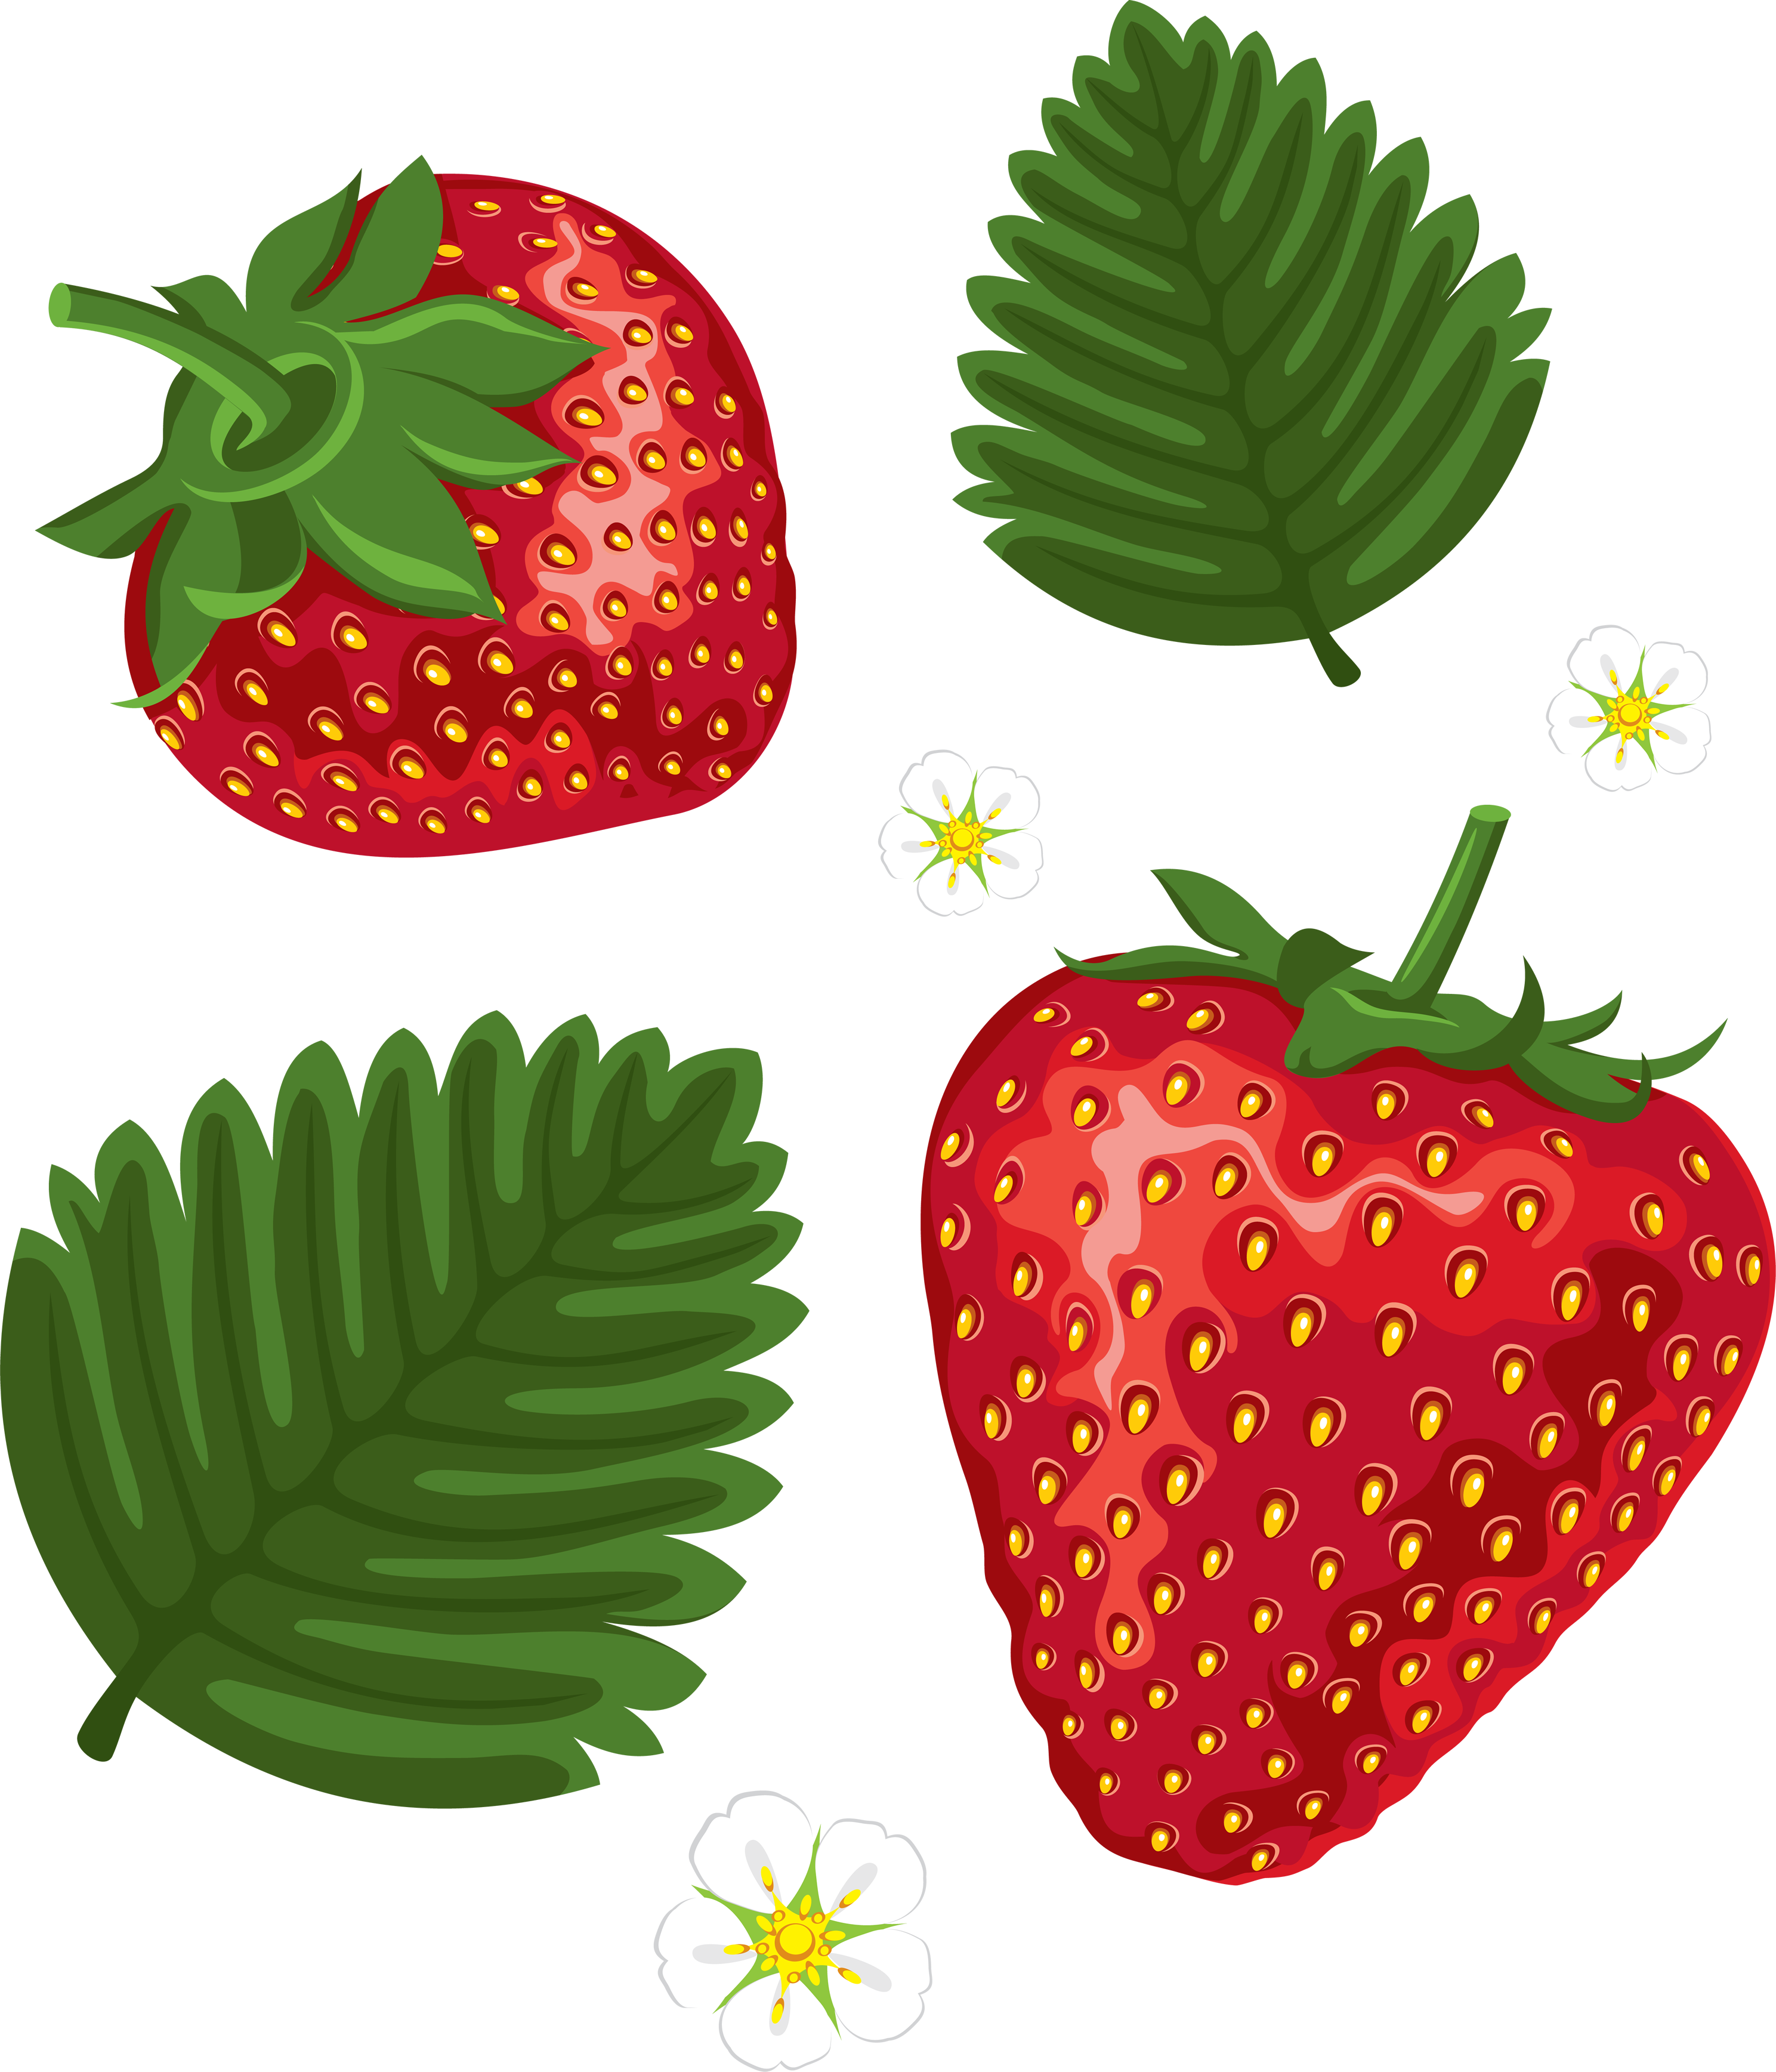 Clipart png strawberry. Image purepng free transparent